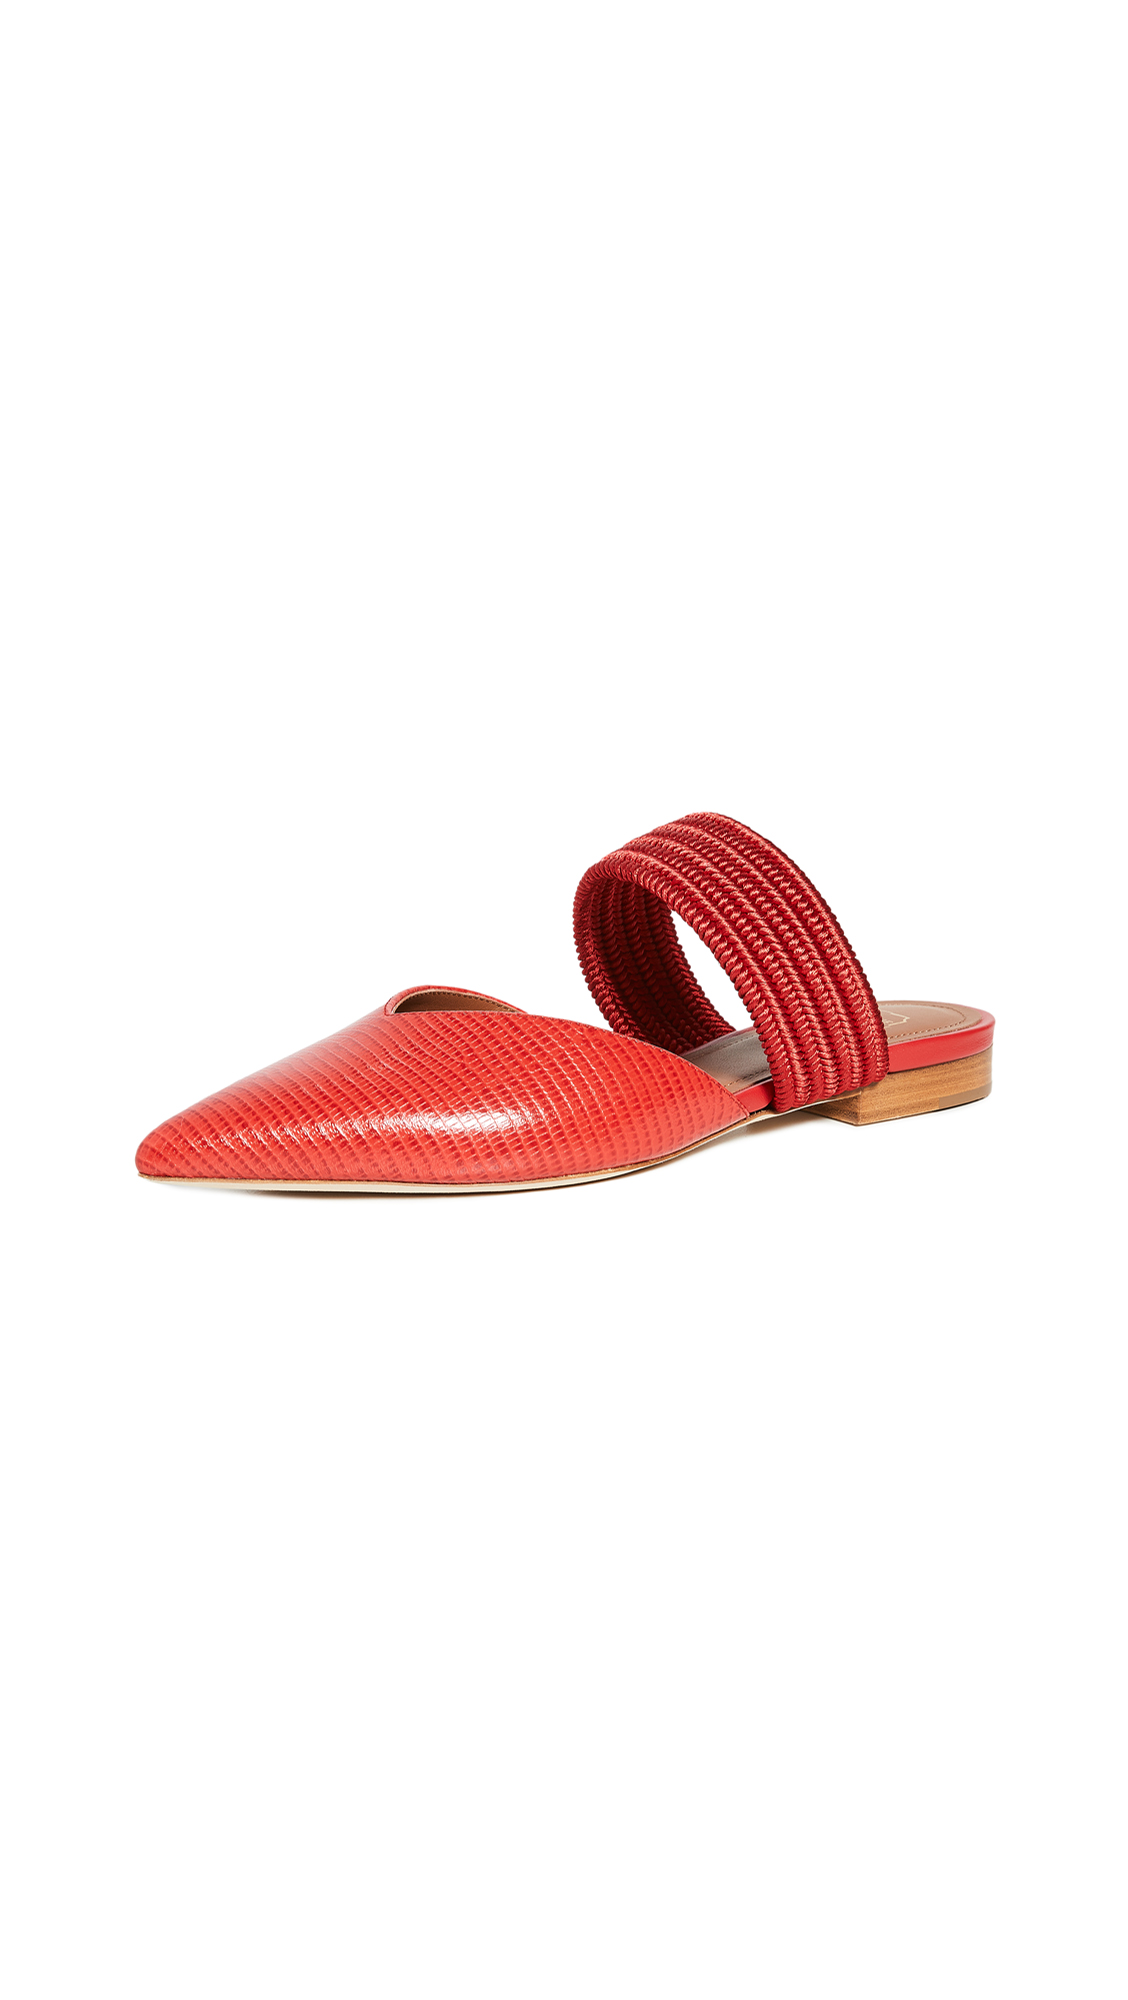 Malone Souliers Maisie Flats – 40% Off Sale